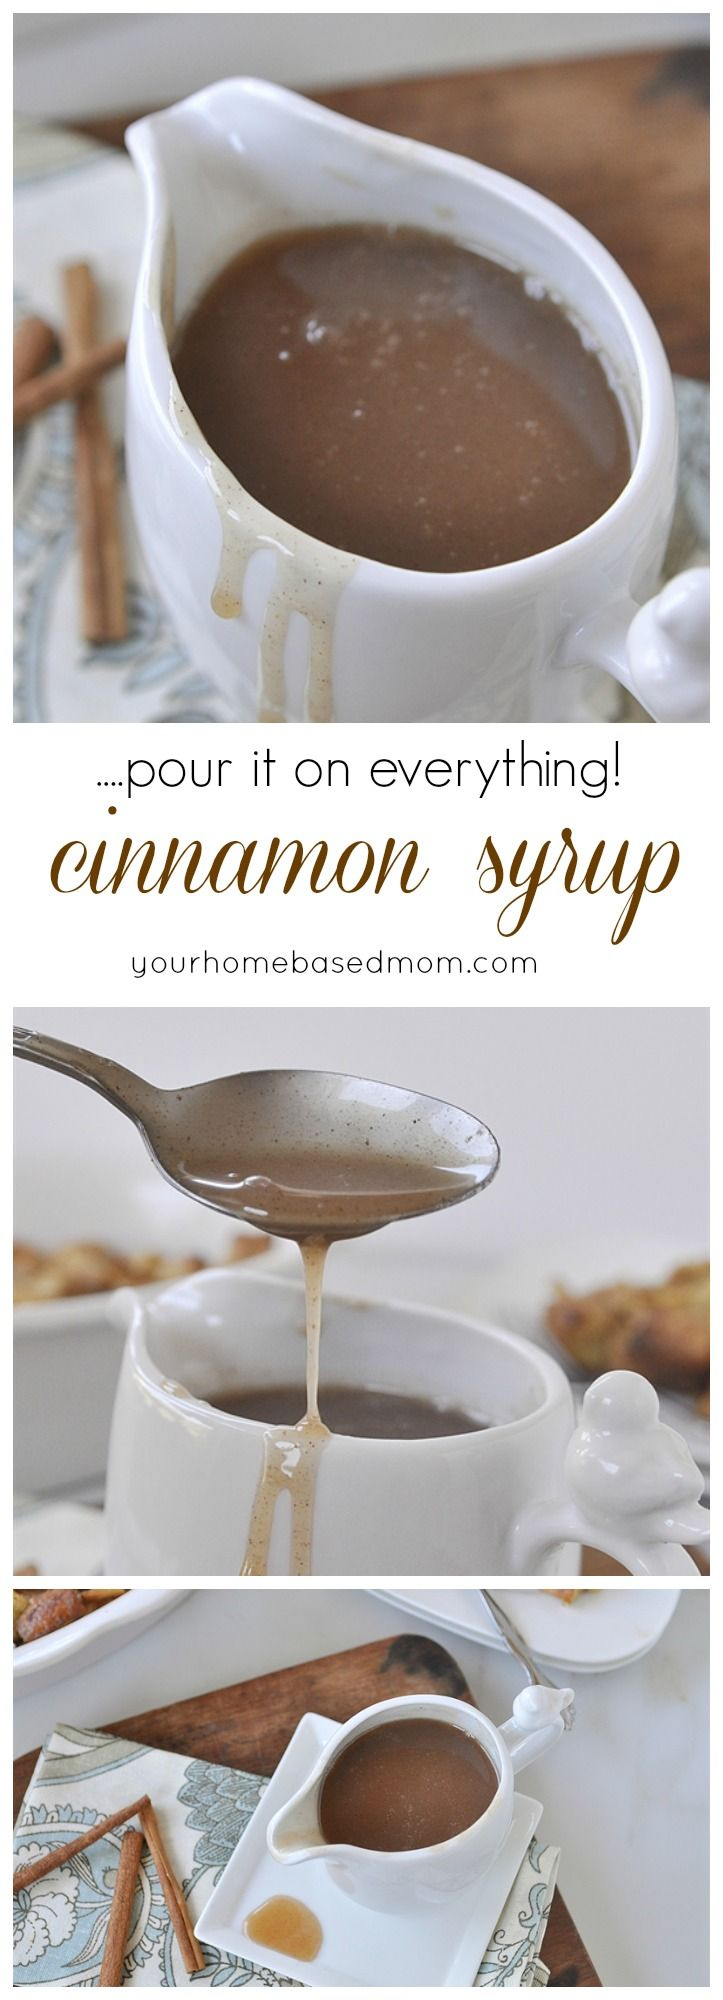 Cinnamon Syrup is delicious on everything! Great for breakfast.